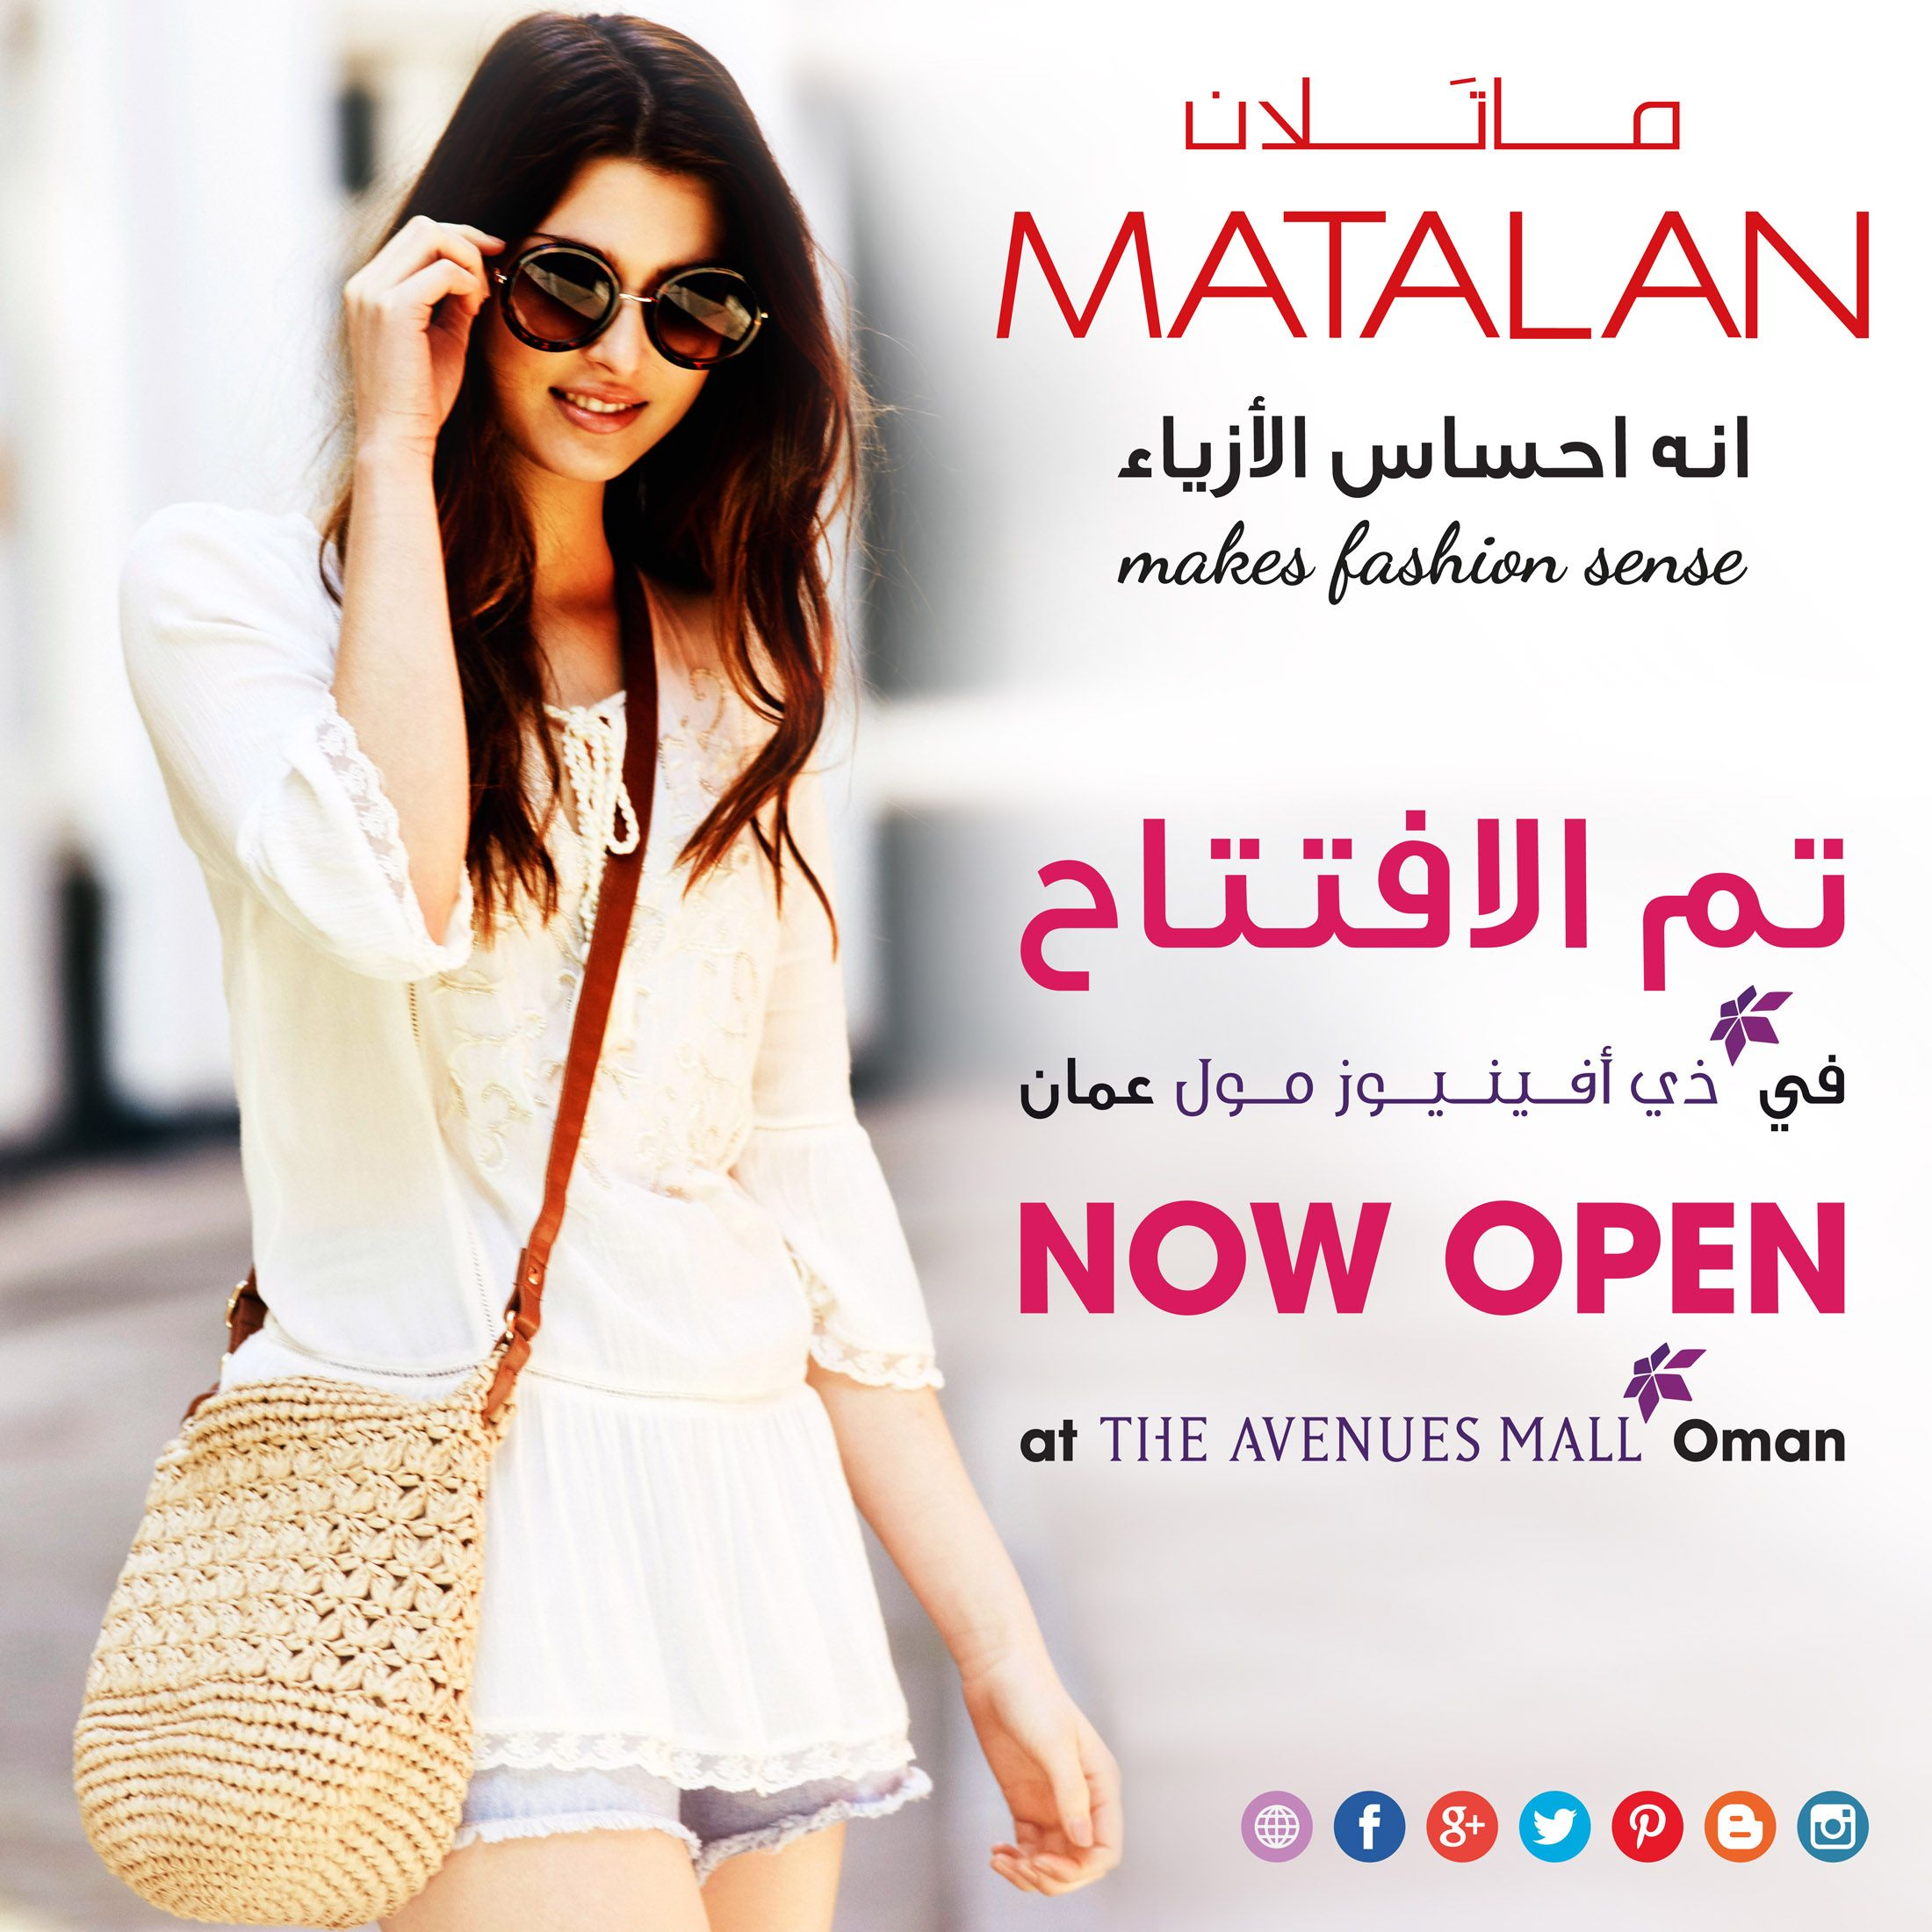 Matalan Now Open In The Avenues Mall Come Shop Now At Uk S No 1 Value Department Store Try Our Quality At Great Price That Ma Matalan Fashion Sense Fashion